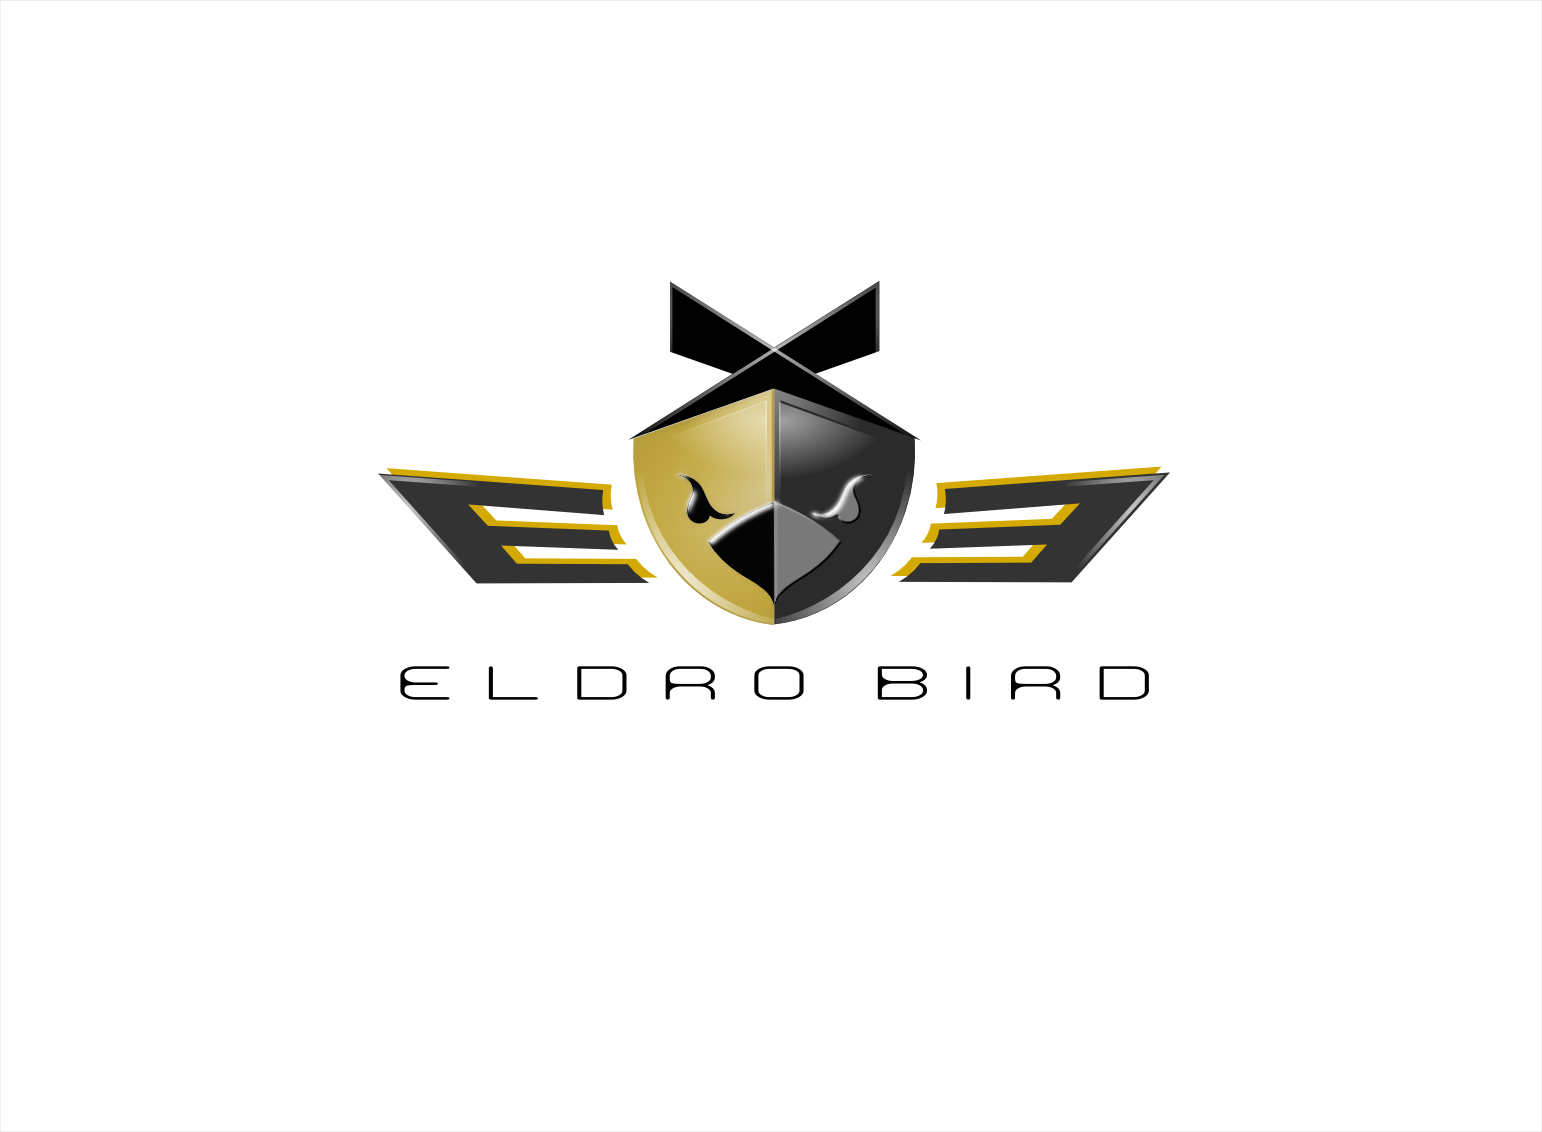 Logo Design by Joseph calunsag Cagaanan - Entry No. 86 in the Logo Design Contest New Logo Design for Bird car.